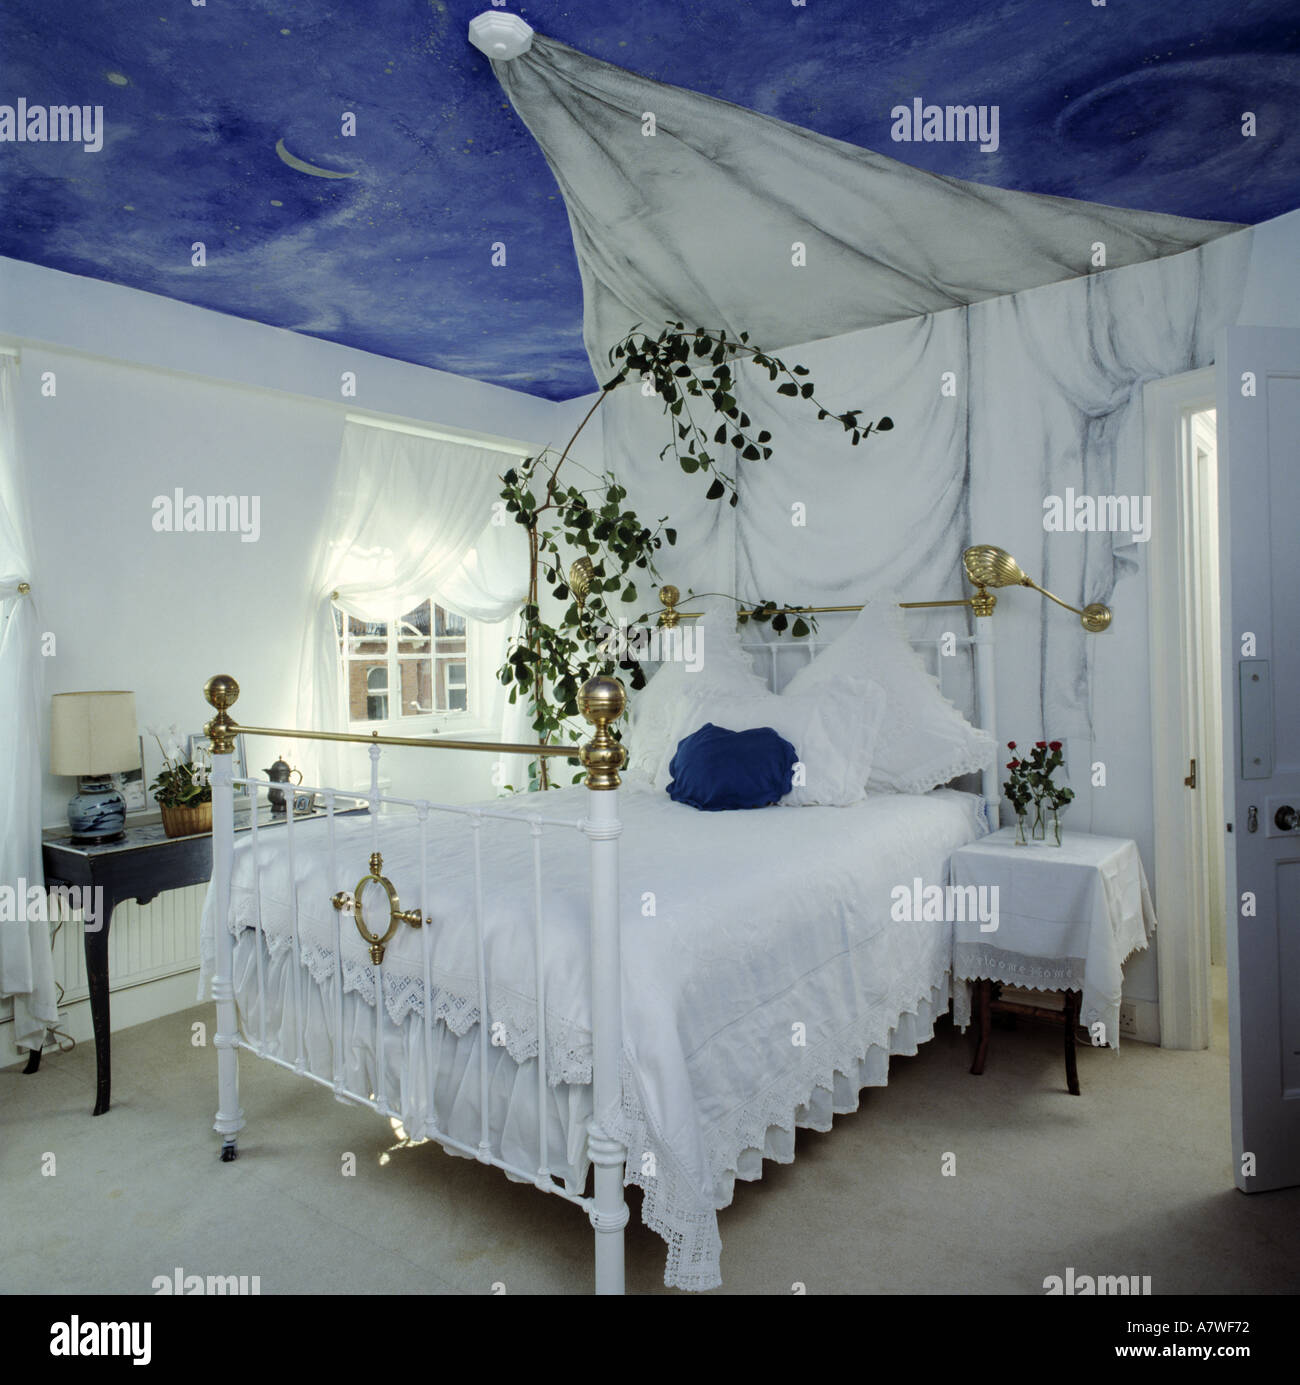 Blue Night Sky Mural Painted On Ceiling Above Bed With False Drapes